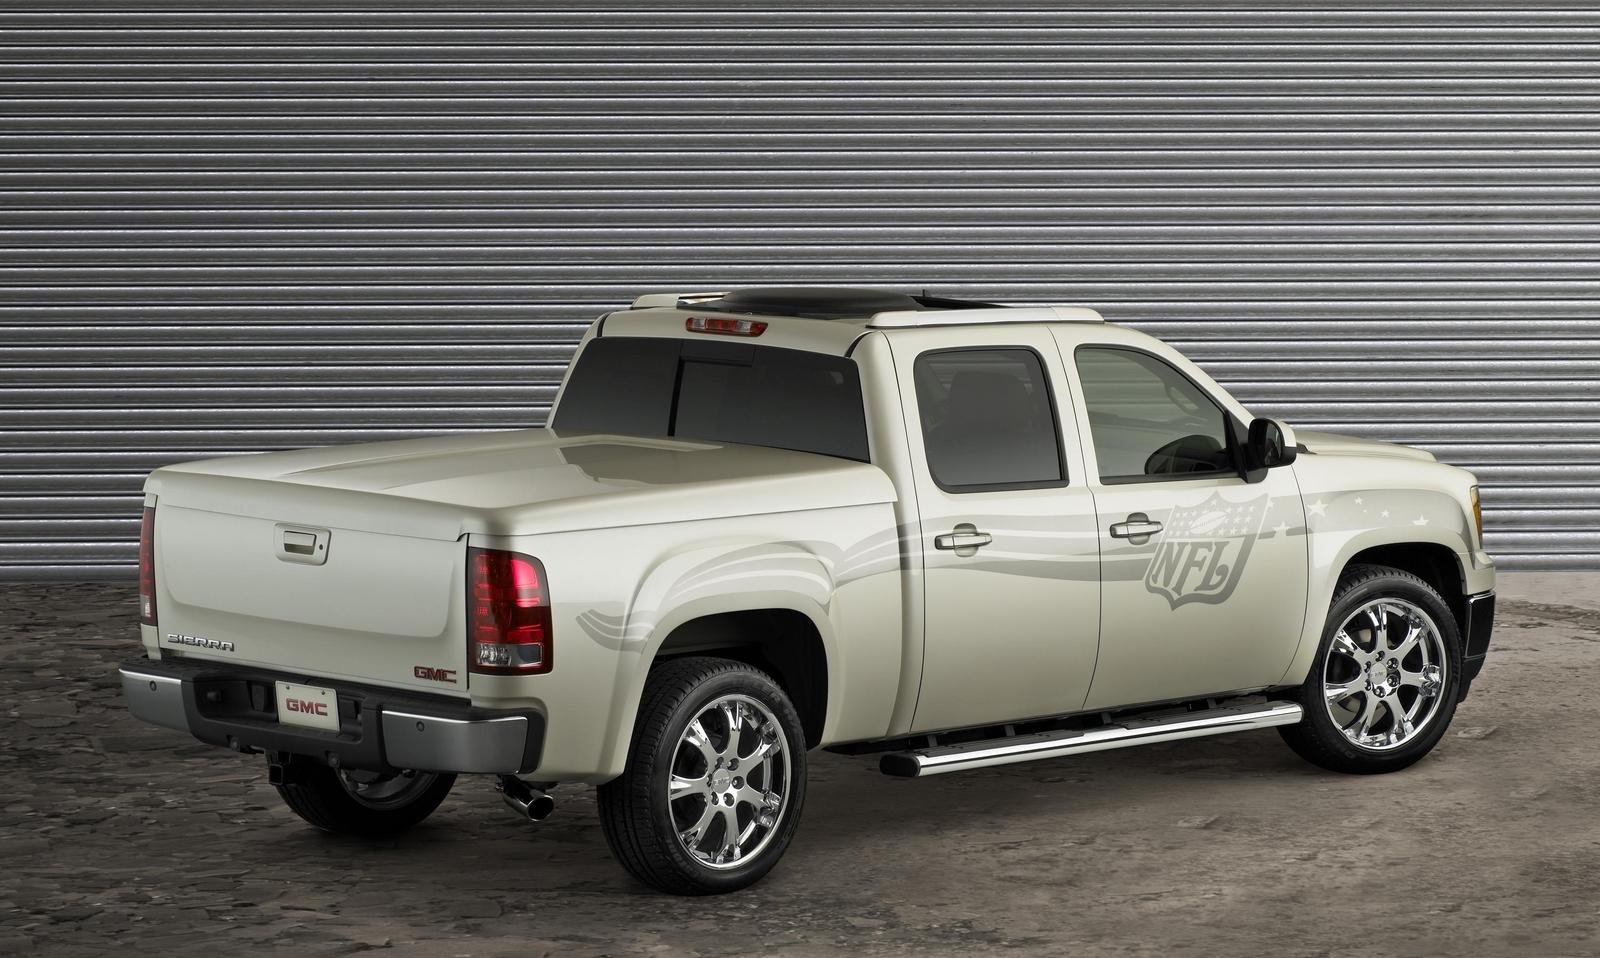 2007 gmc sierra nfl crew cab picture 108937 car review. Black Bedroom Furniture Sets. Home Design Ideas